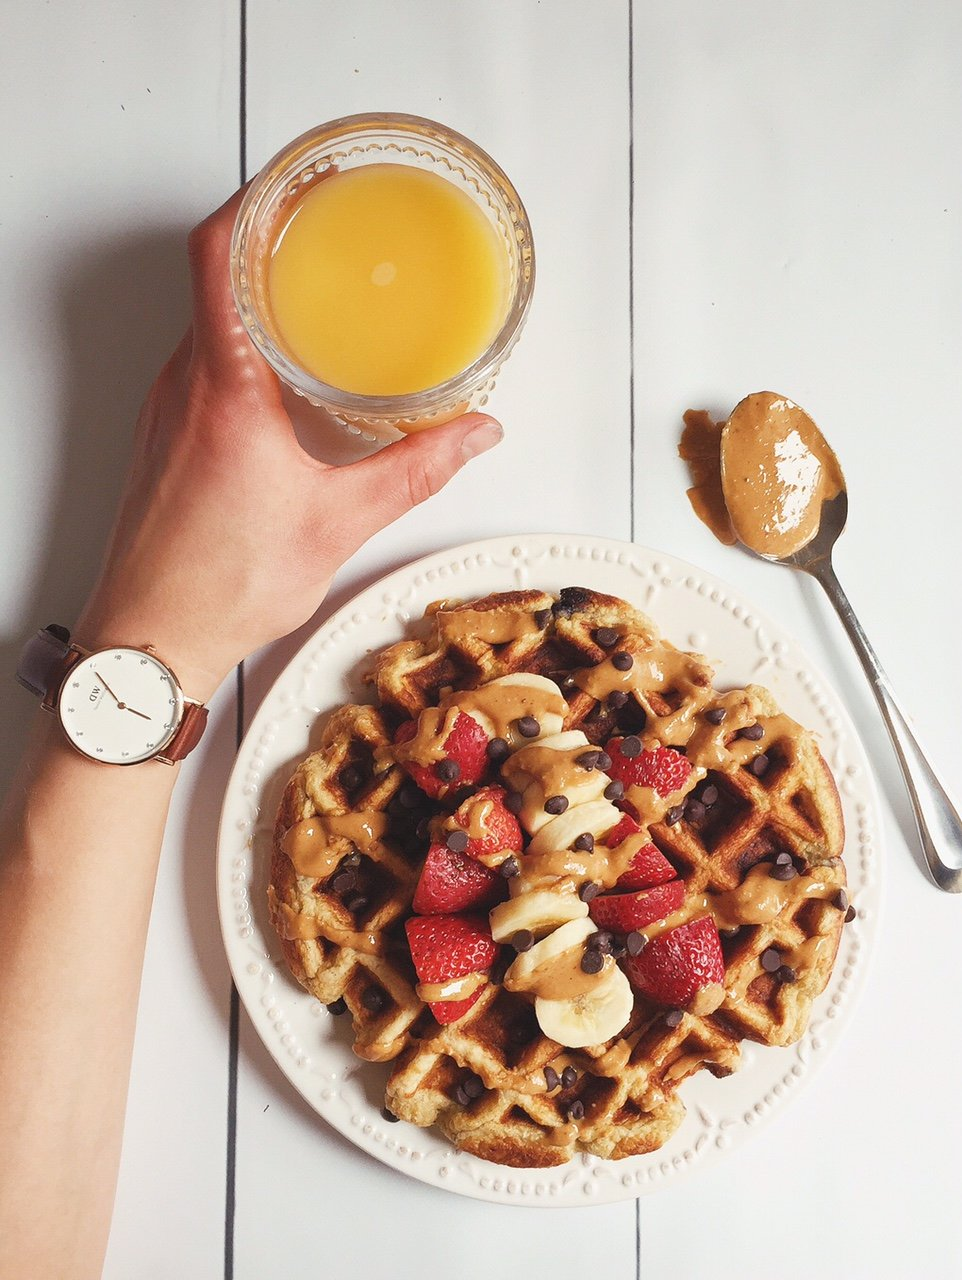 waffle on a plate with a side of orange juice